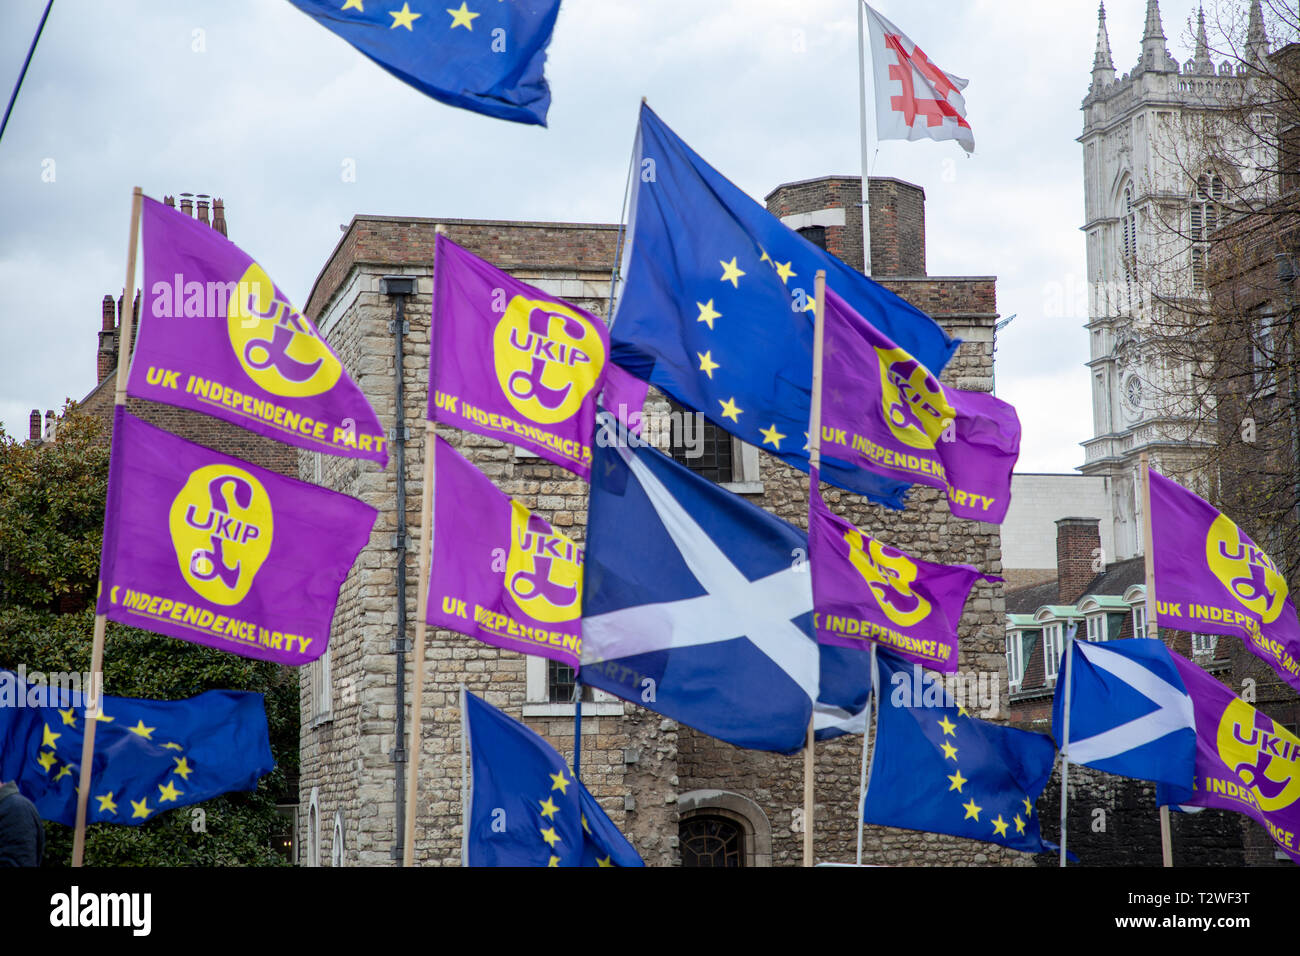 European Scottish and UKIP (UK Independence Party) flags wave outside Parliament, London, UK with Jewel Tower and Westminster Abbey in the background. - Stock Image